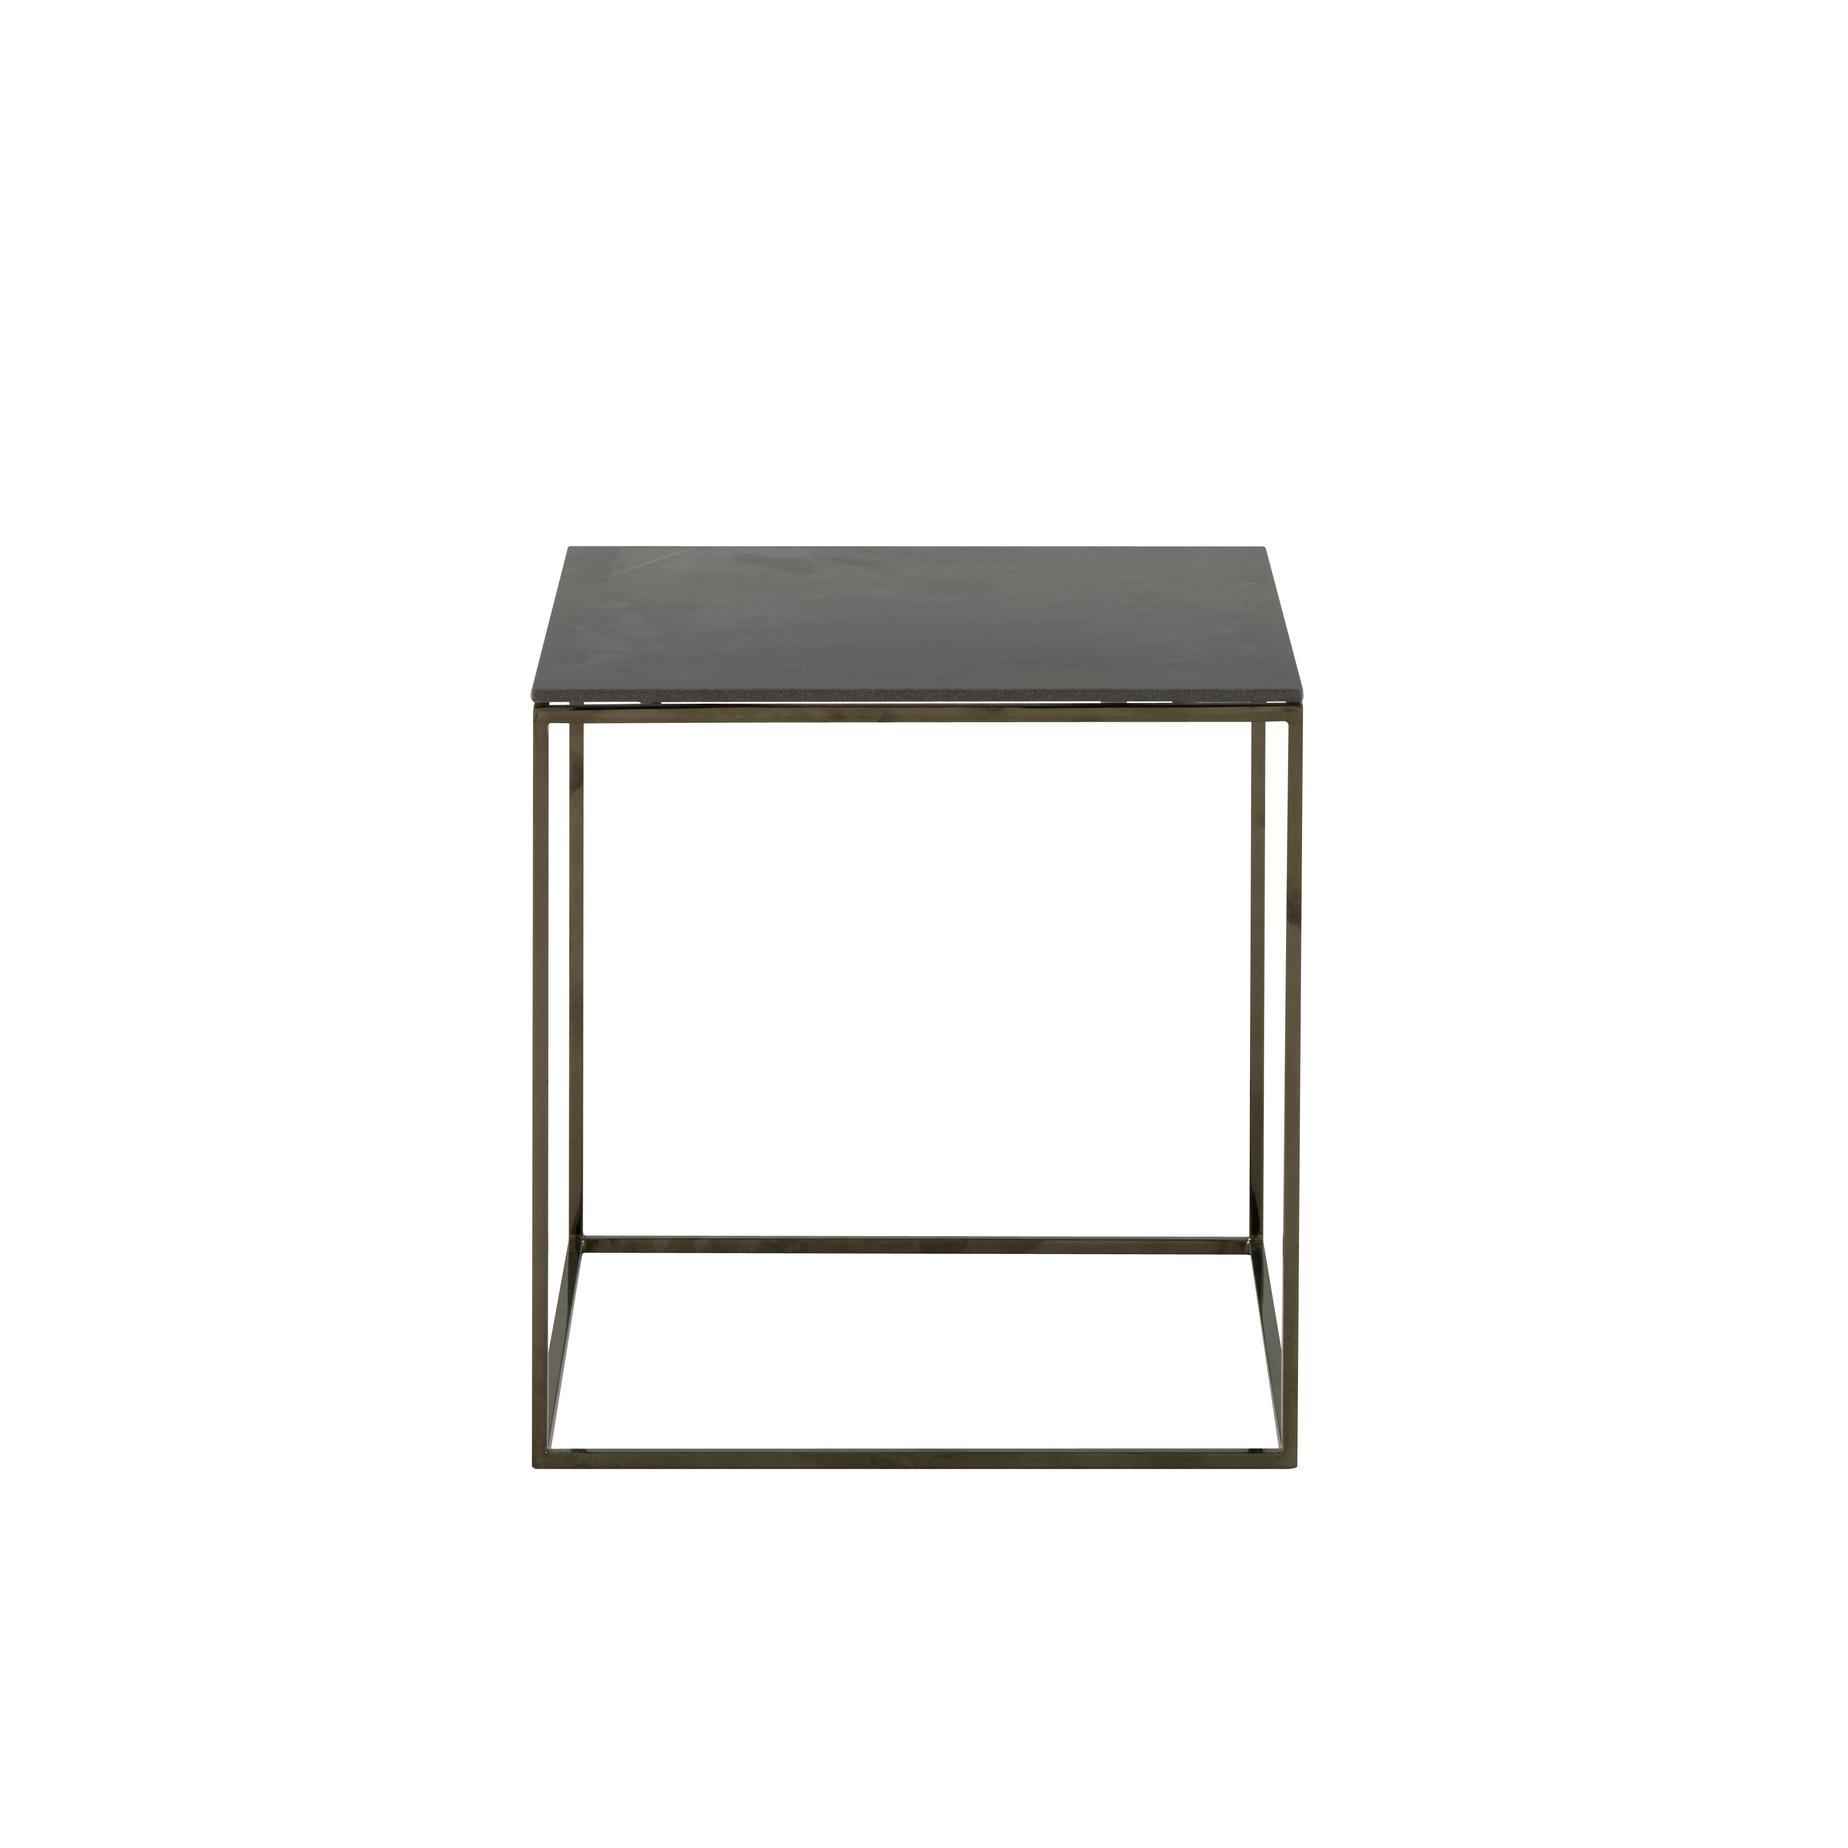 space occasional tables designer pagnon pelha tre ligne roset. Black Bedroom Furniture Sets. Home Design Ideas